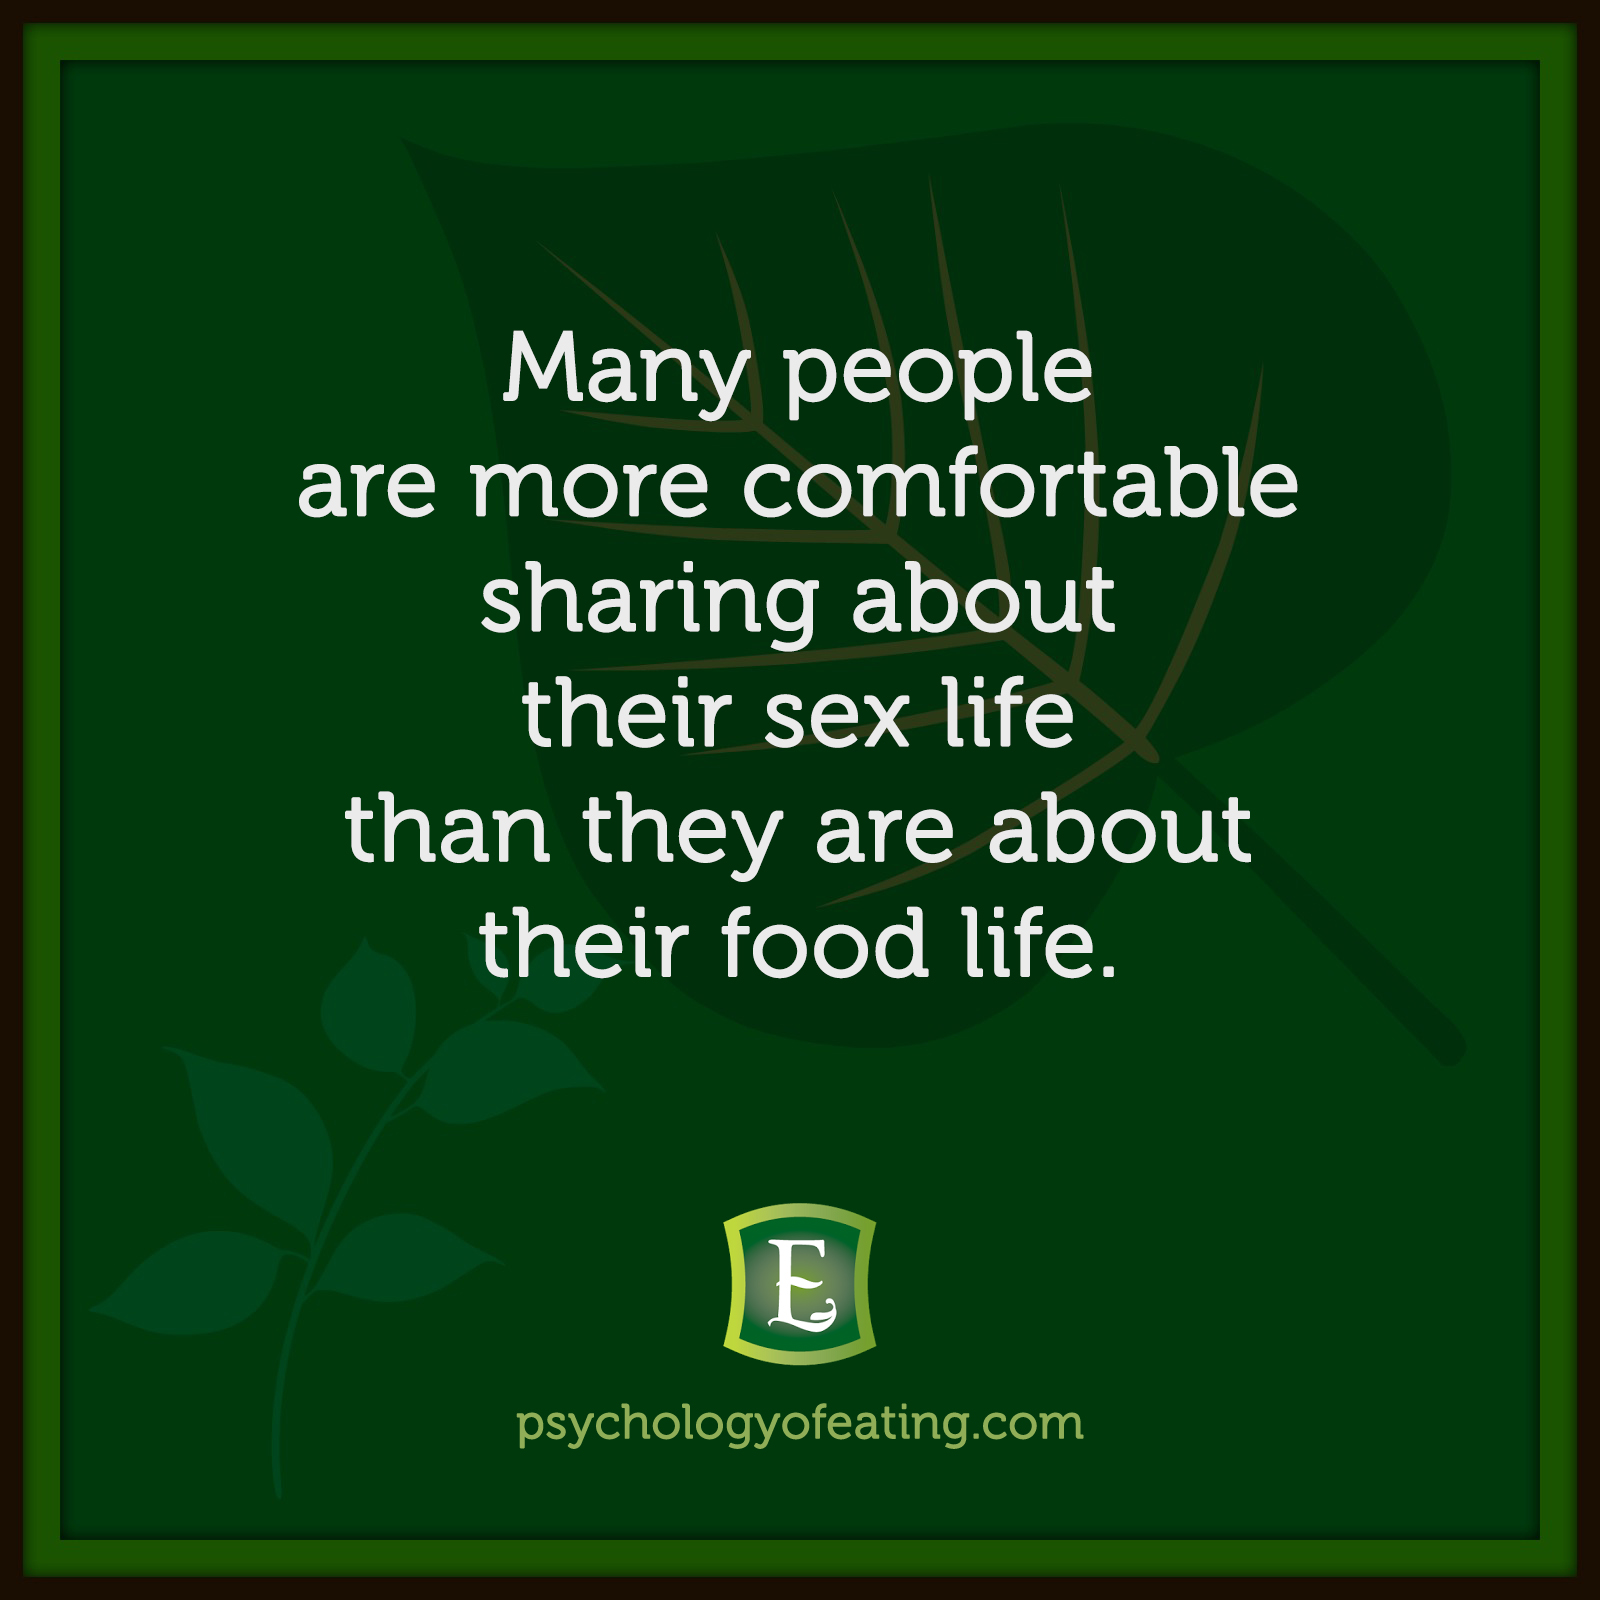 Many people are more comfortable sharing about their sex life than they are about their food life. #health #nutrition #eatingpsychology #IPE